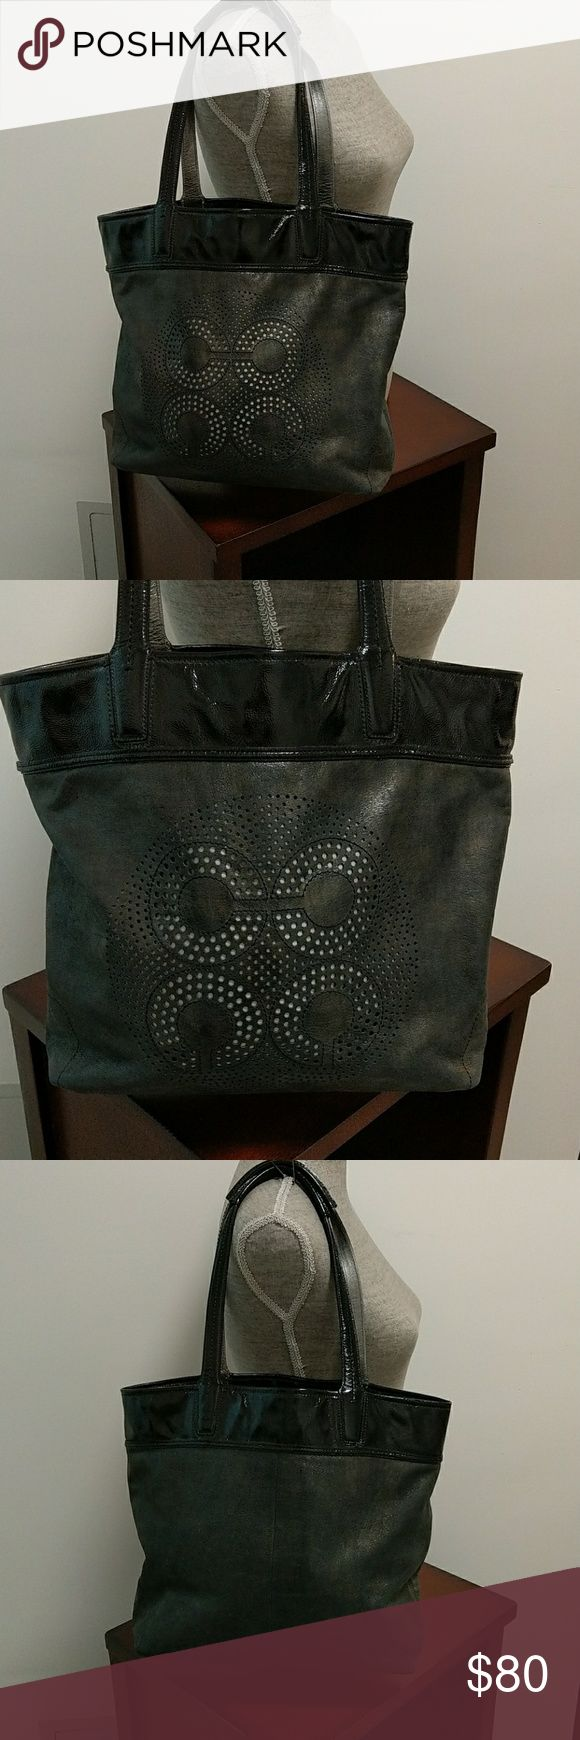 COACH!  Large soft leather black tote!! COACH !! Used but in excellent condition large black tote bag 100% authentic truly gorgeous bag !! No marks or stains on bag! Coach Bags Totes